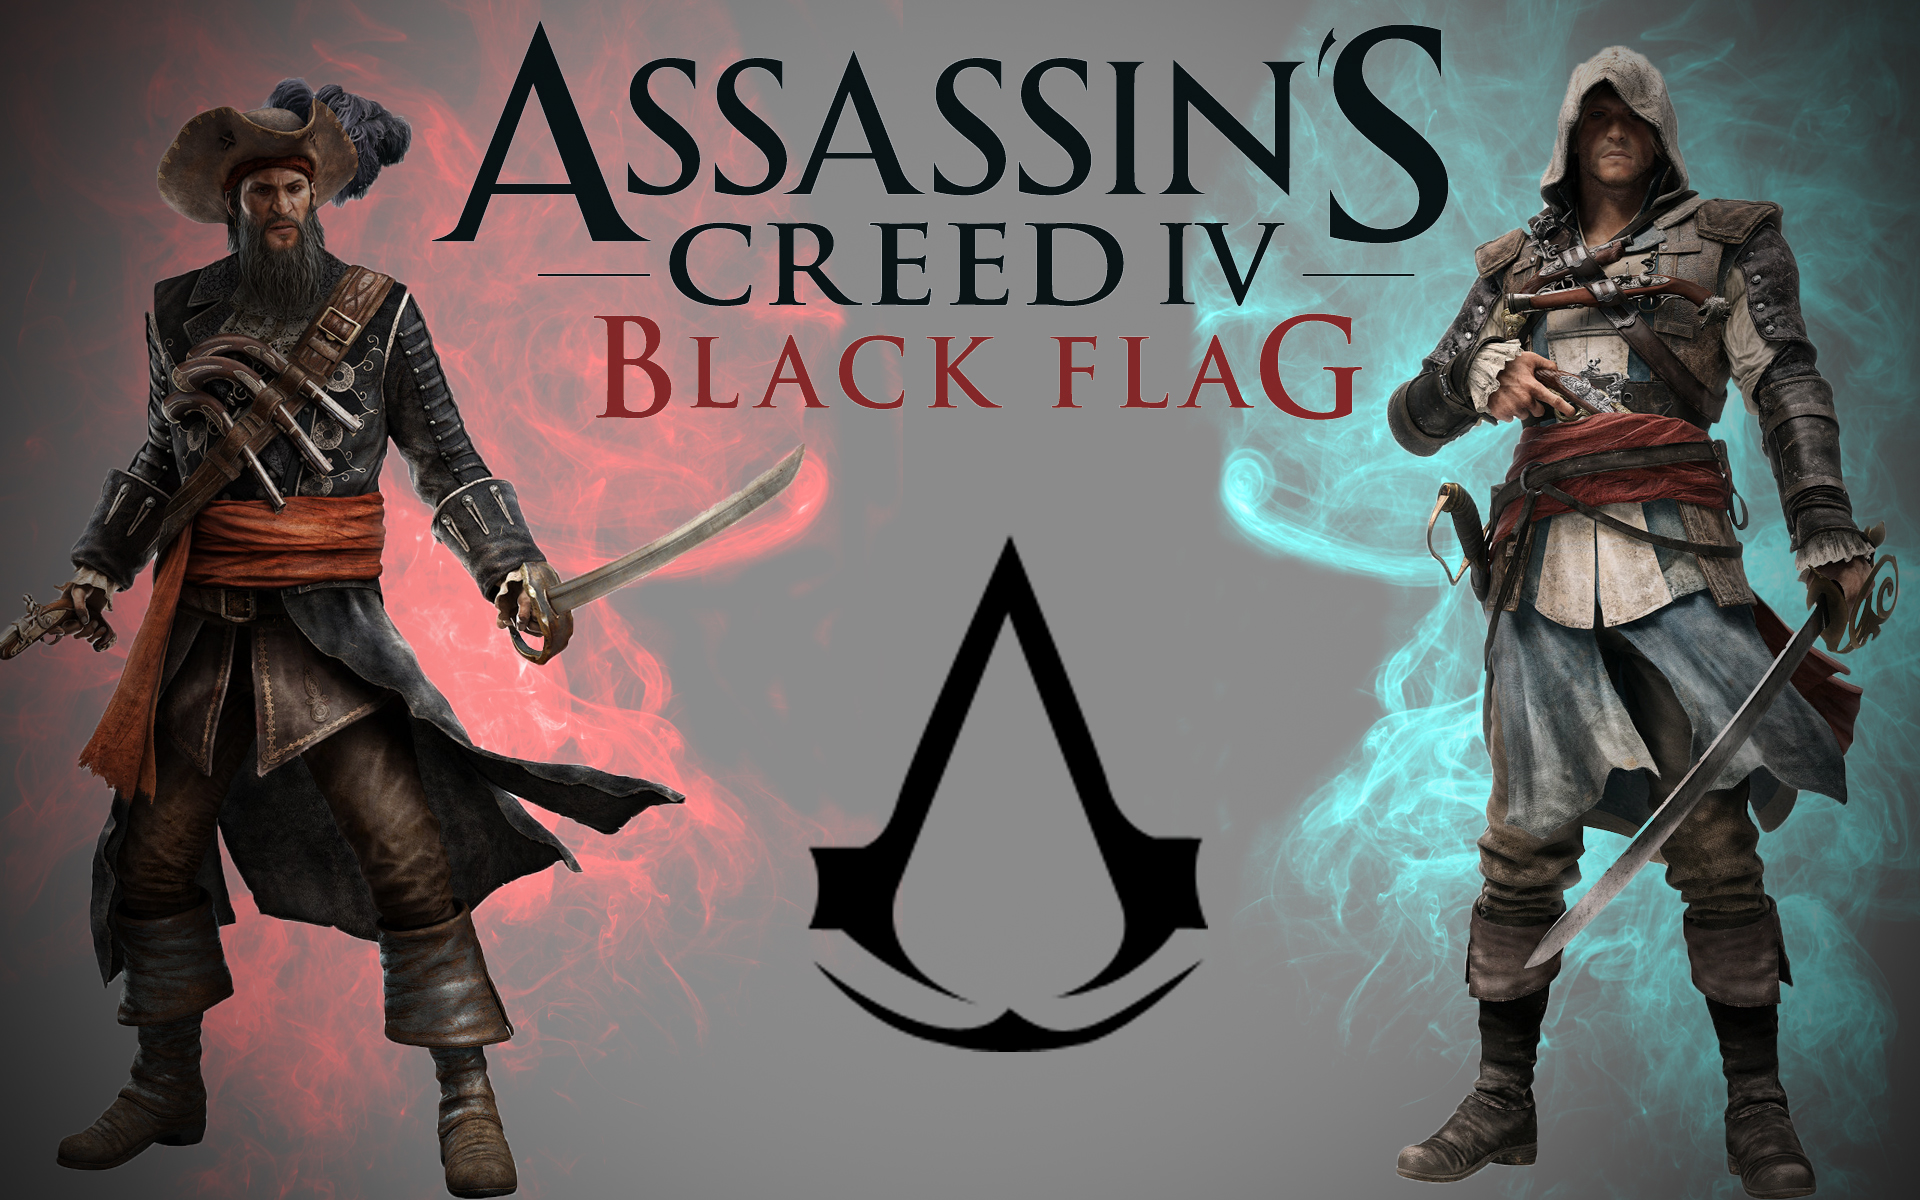 Assassins creed iv black flag wallpaper 16 wallpapersbq assassins creed iv black flag wallpaper 16 voltagebd Image collections